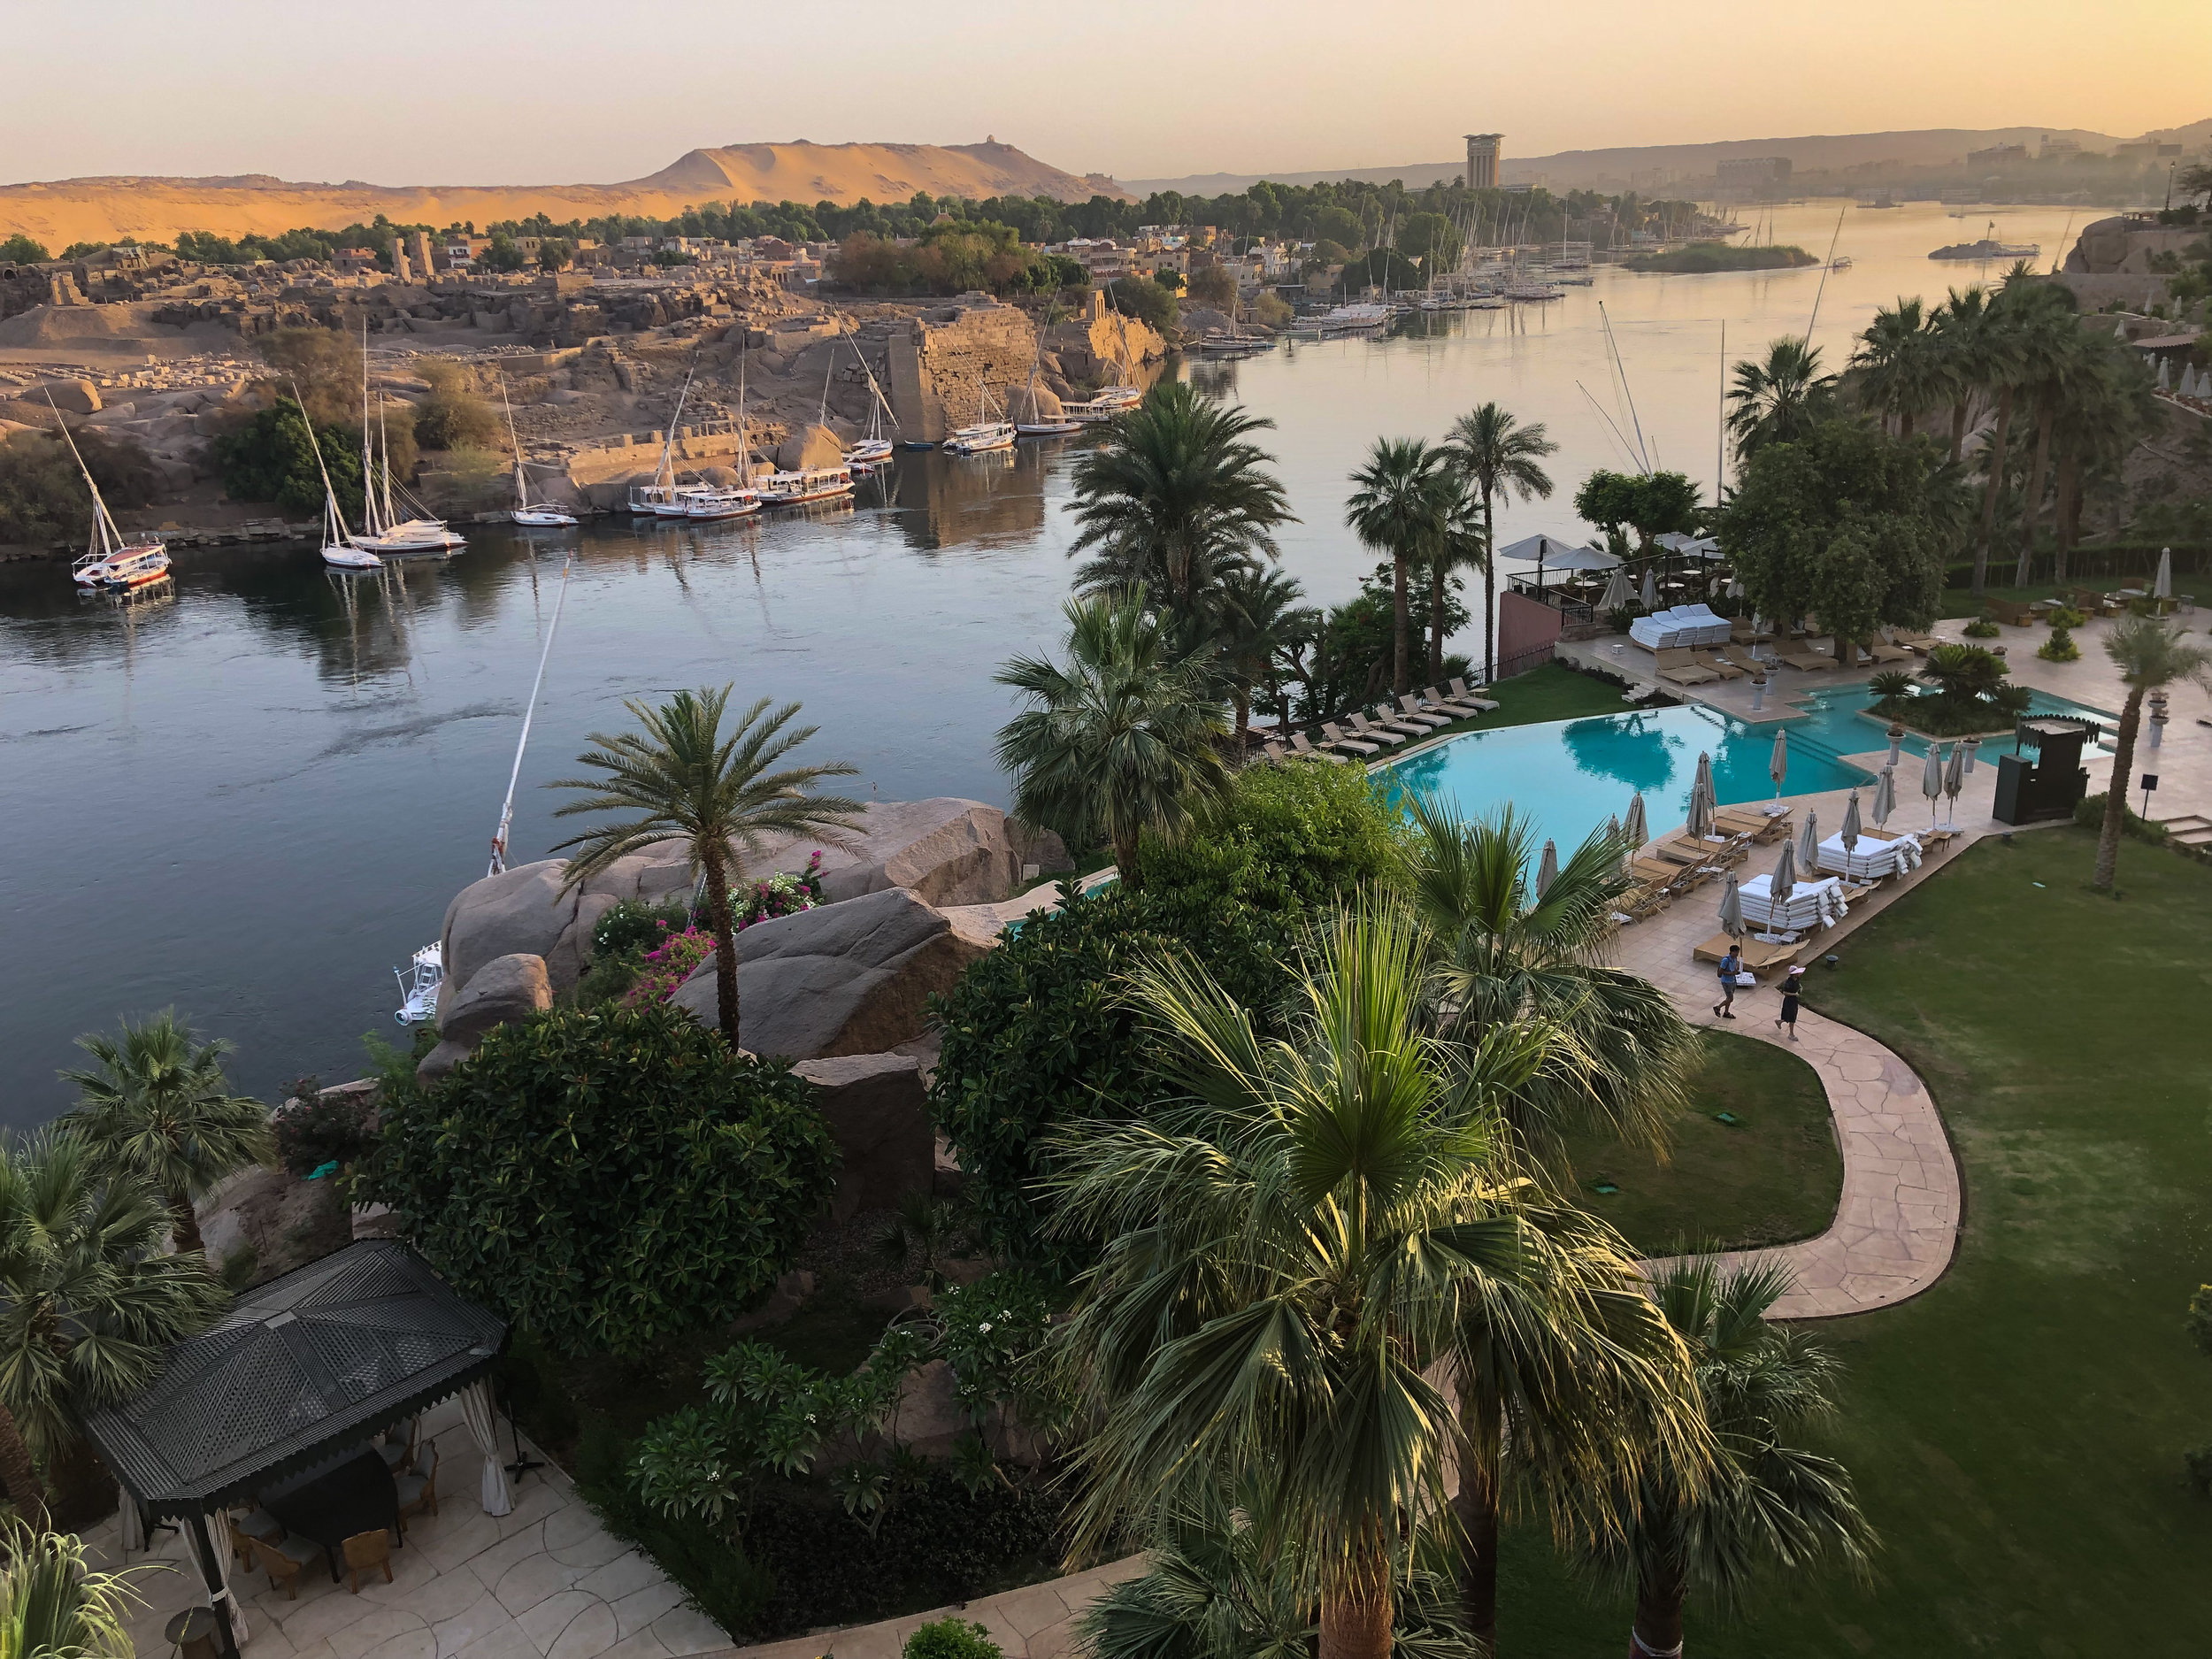 View from The Old Cataract, Aswan - Egypt - Wild Earth Expeditions